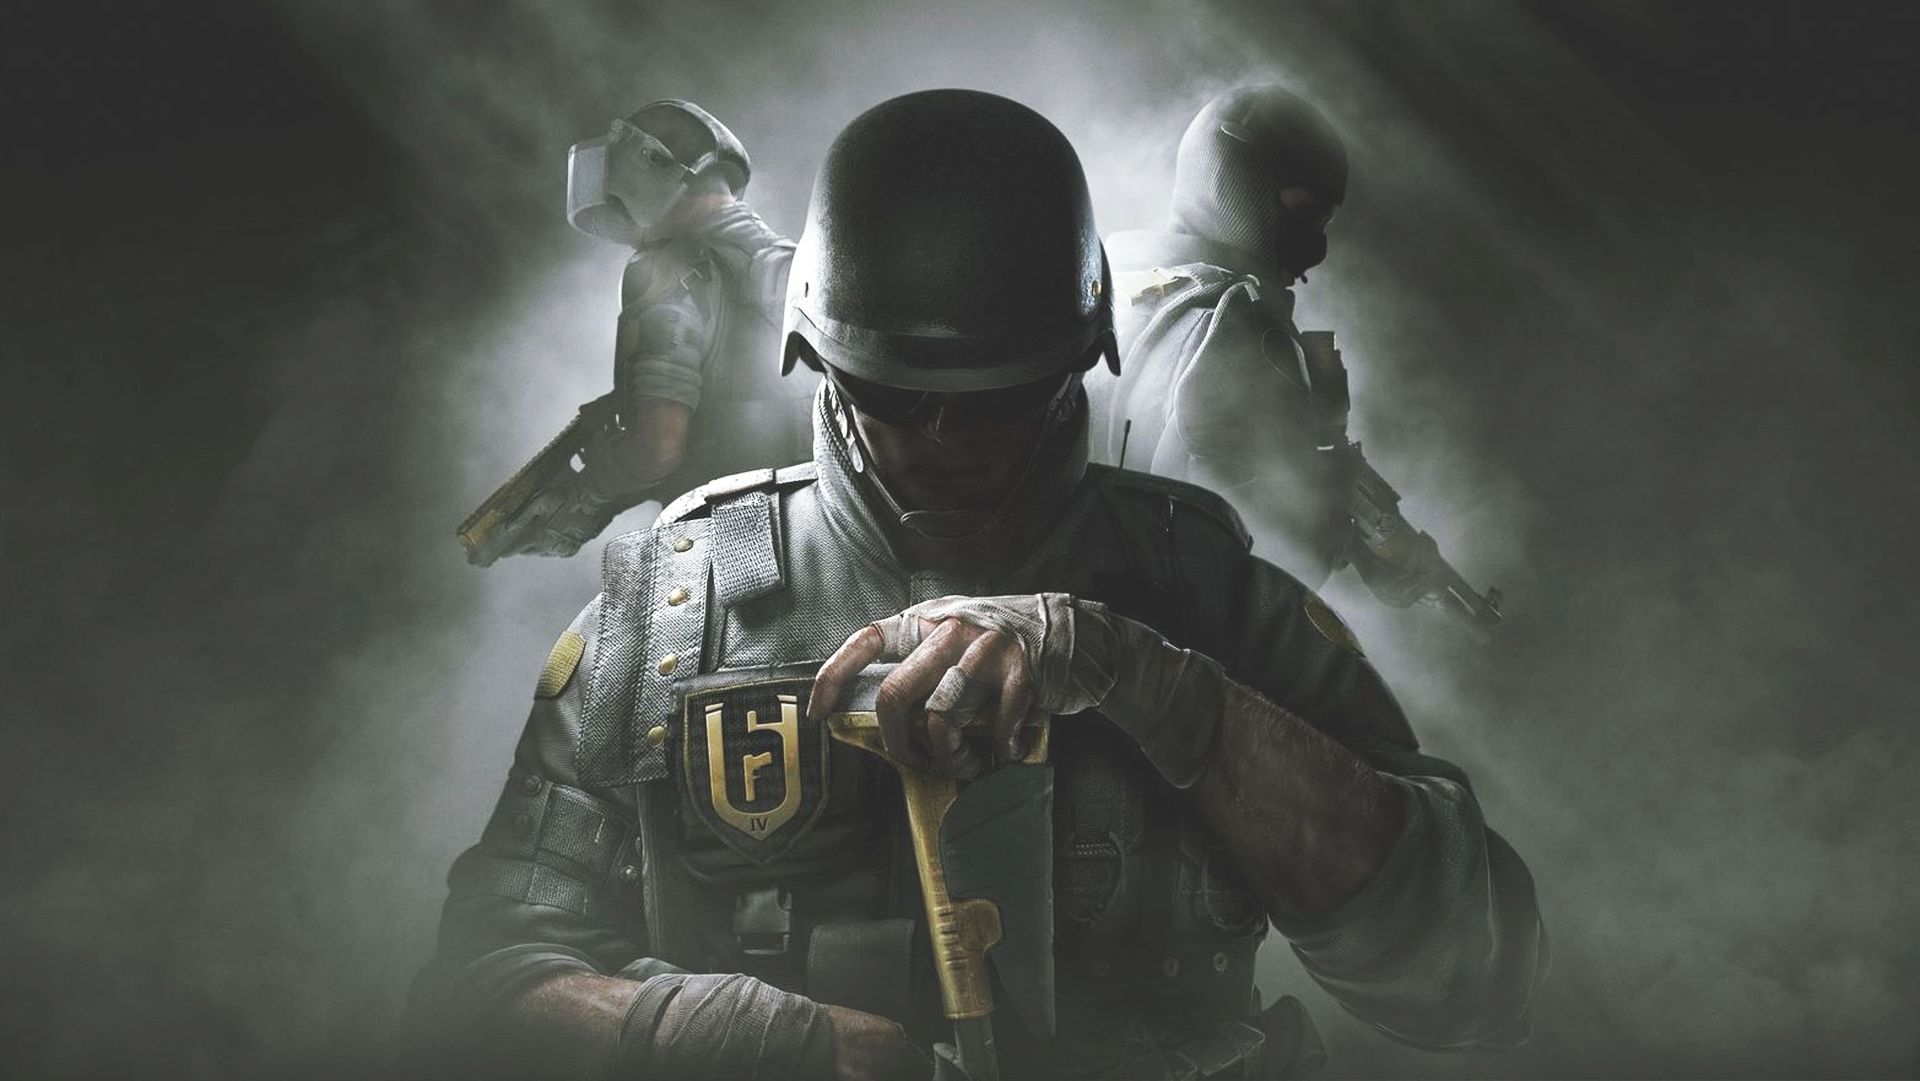 Rainbow Six Siege's new Danish and Secret Service operator's gadgets may have leaked